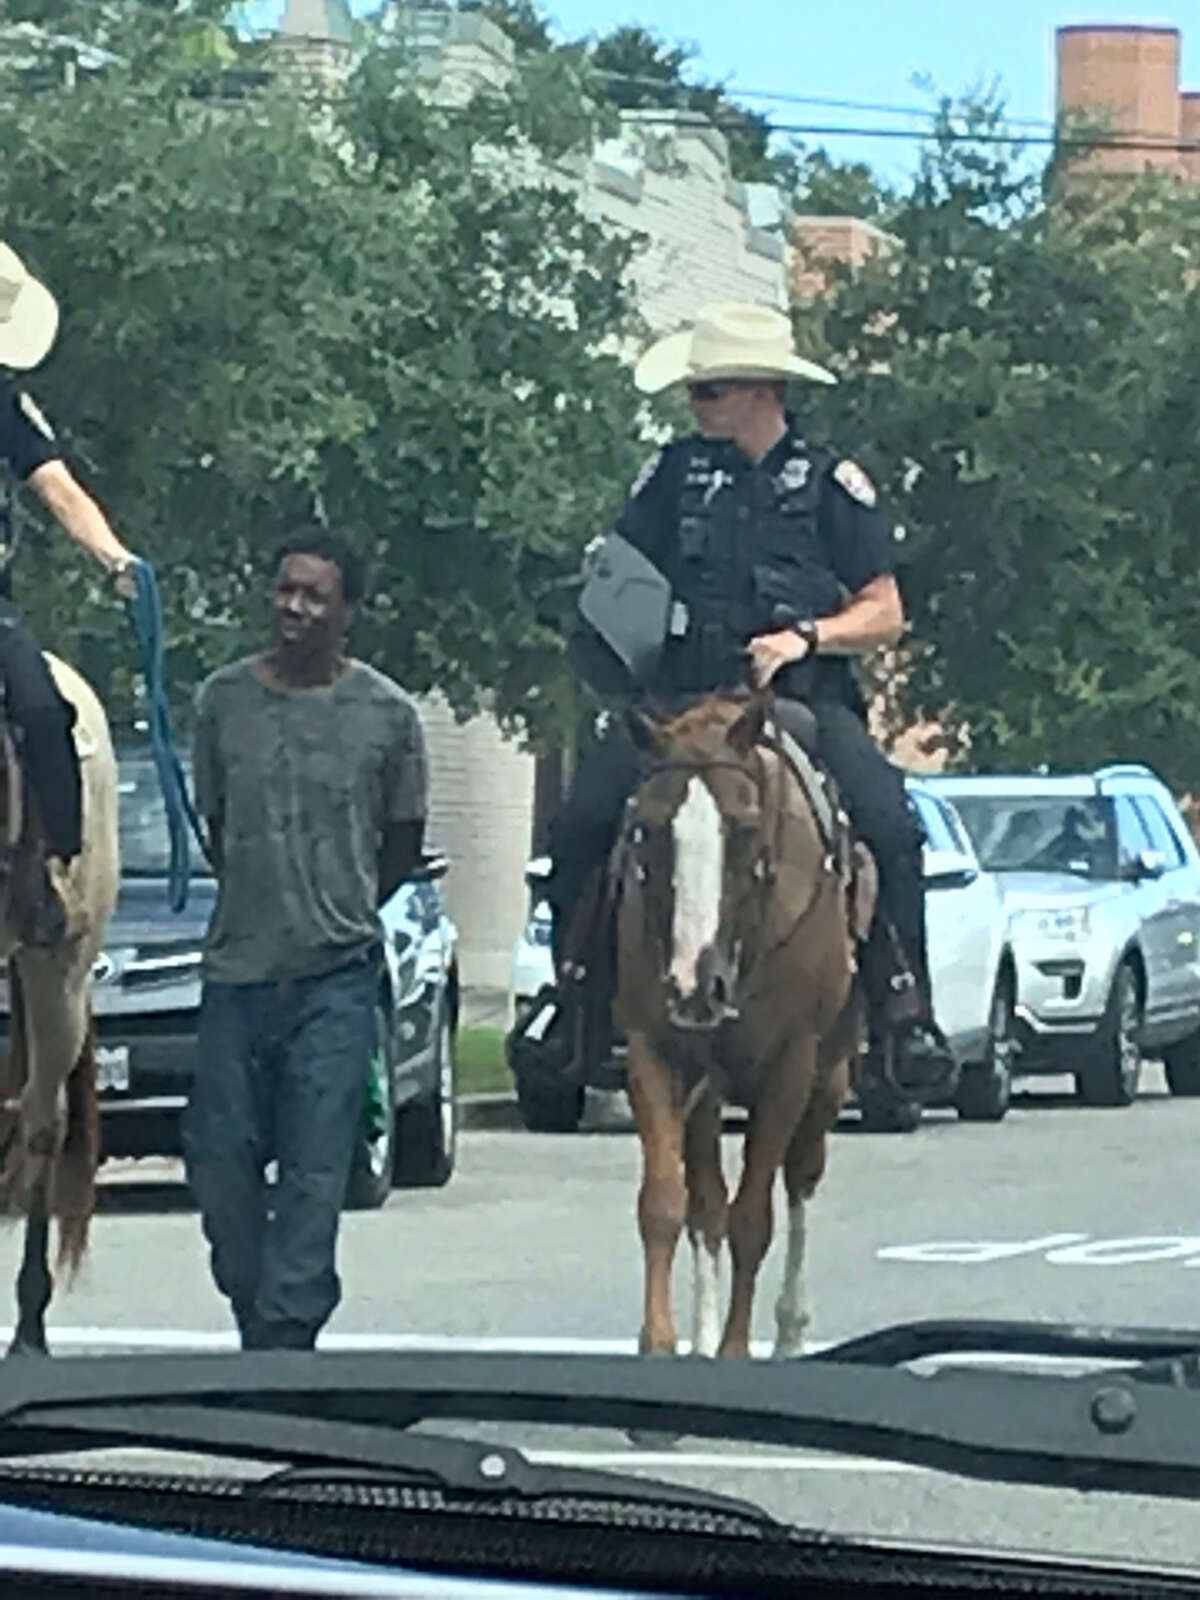 Galveston Police were placed in the national limelight after a dramatic photo circulated online showing horse-mounted officers leading a handcuffed man of color by what appears to be a rope.